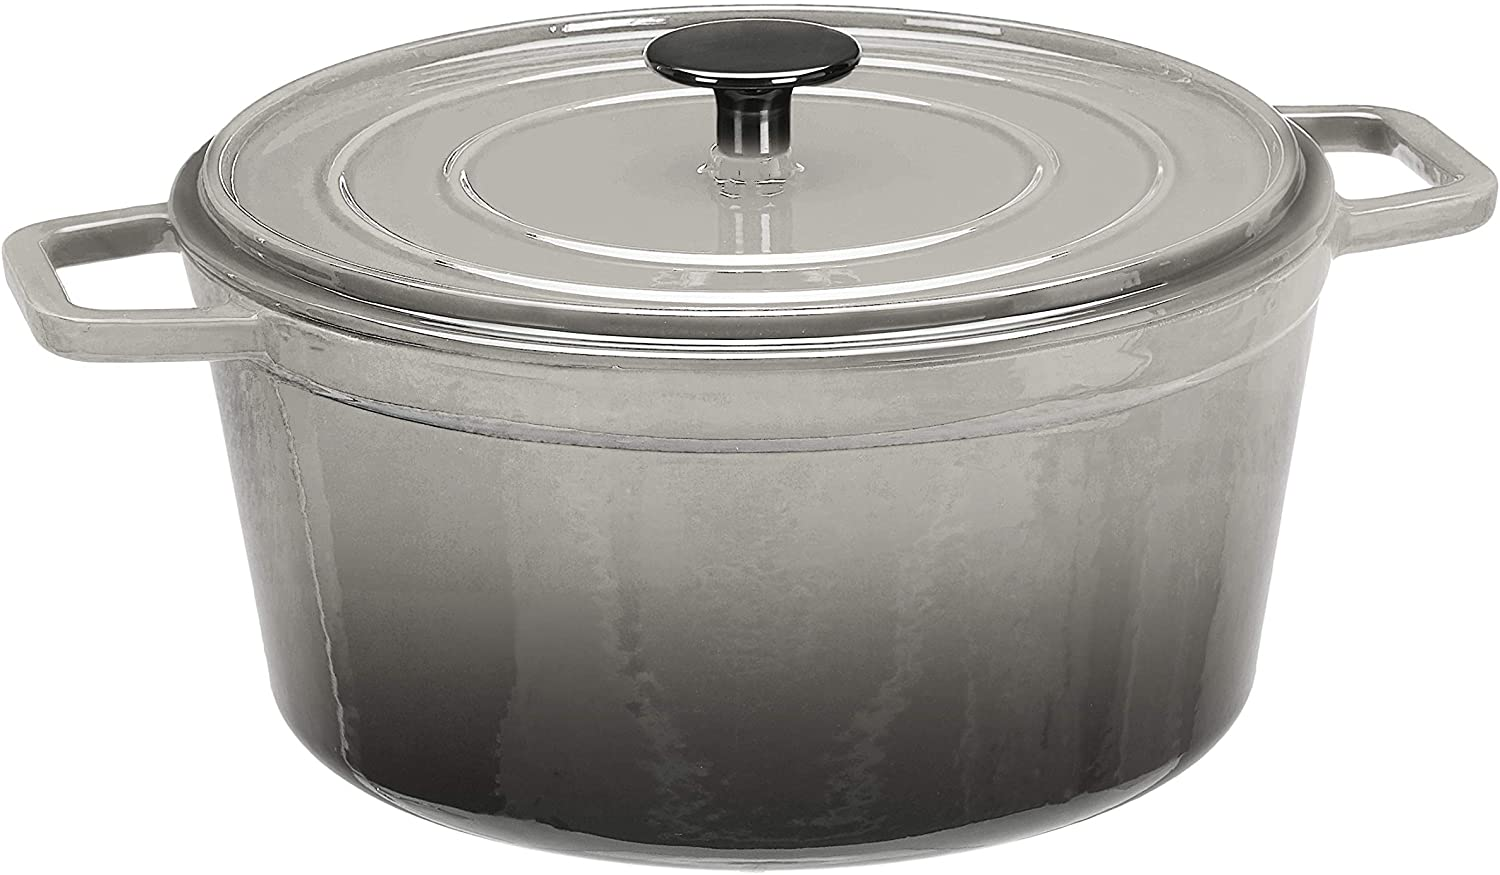 AmazonBasics Premium Enameled Cast Iron Dutch Oven, 5-Quart, Deep Grey